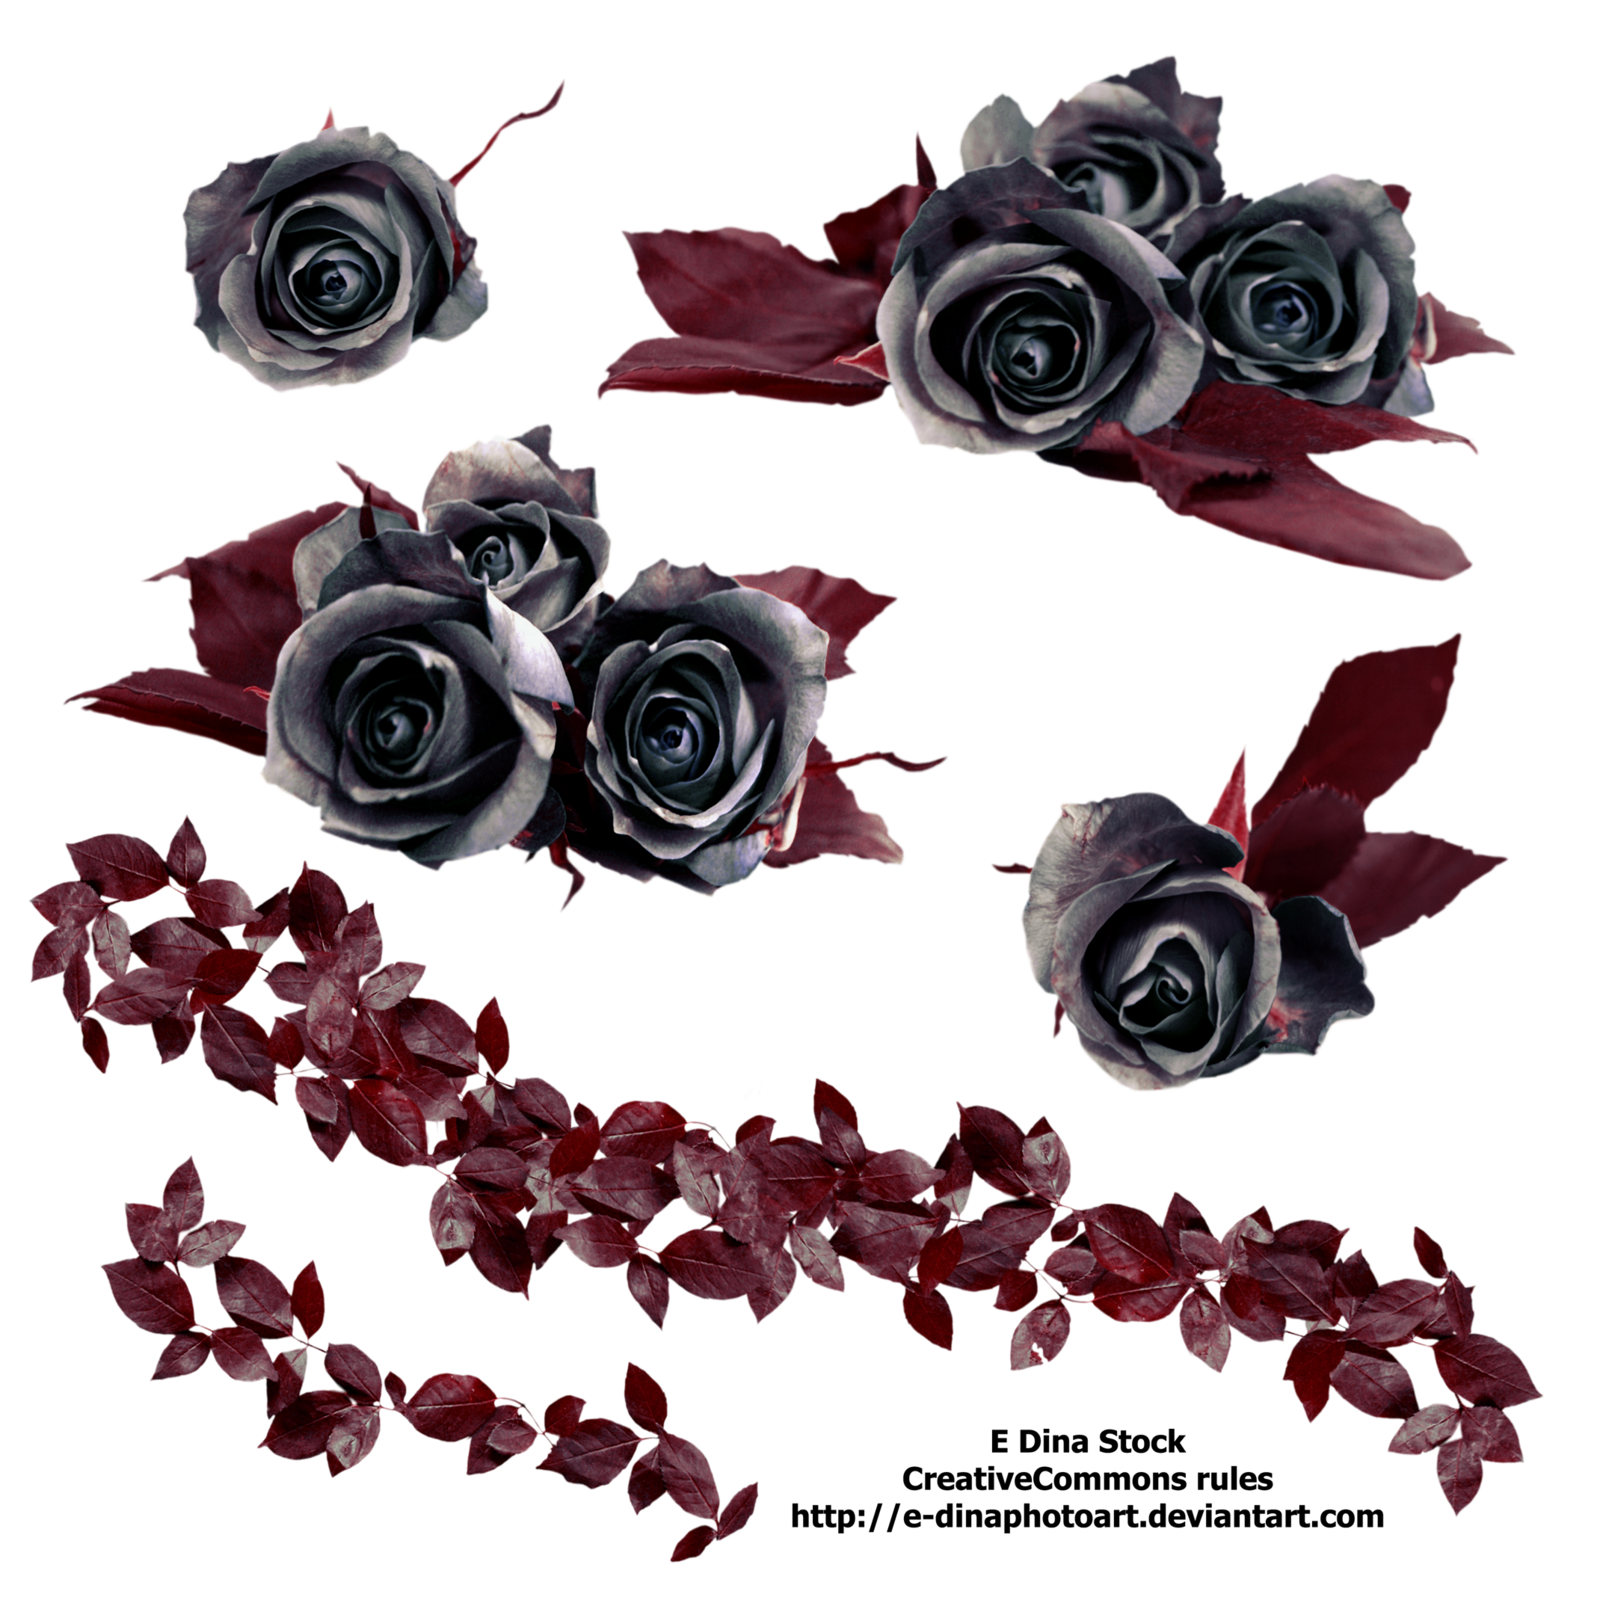 36be40dab Rose Vine PNG HD Transparent Rose Vine HD.PNG Images. | PlusPNG